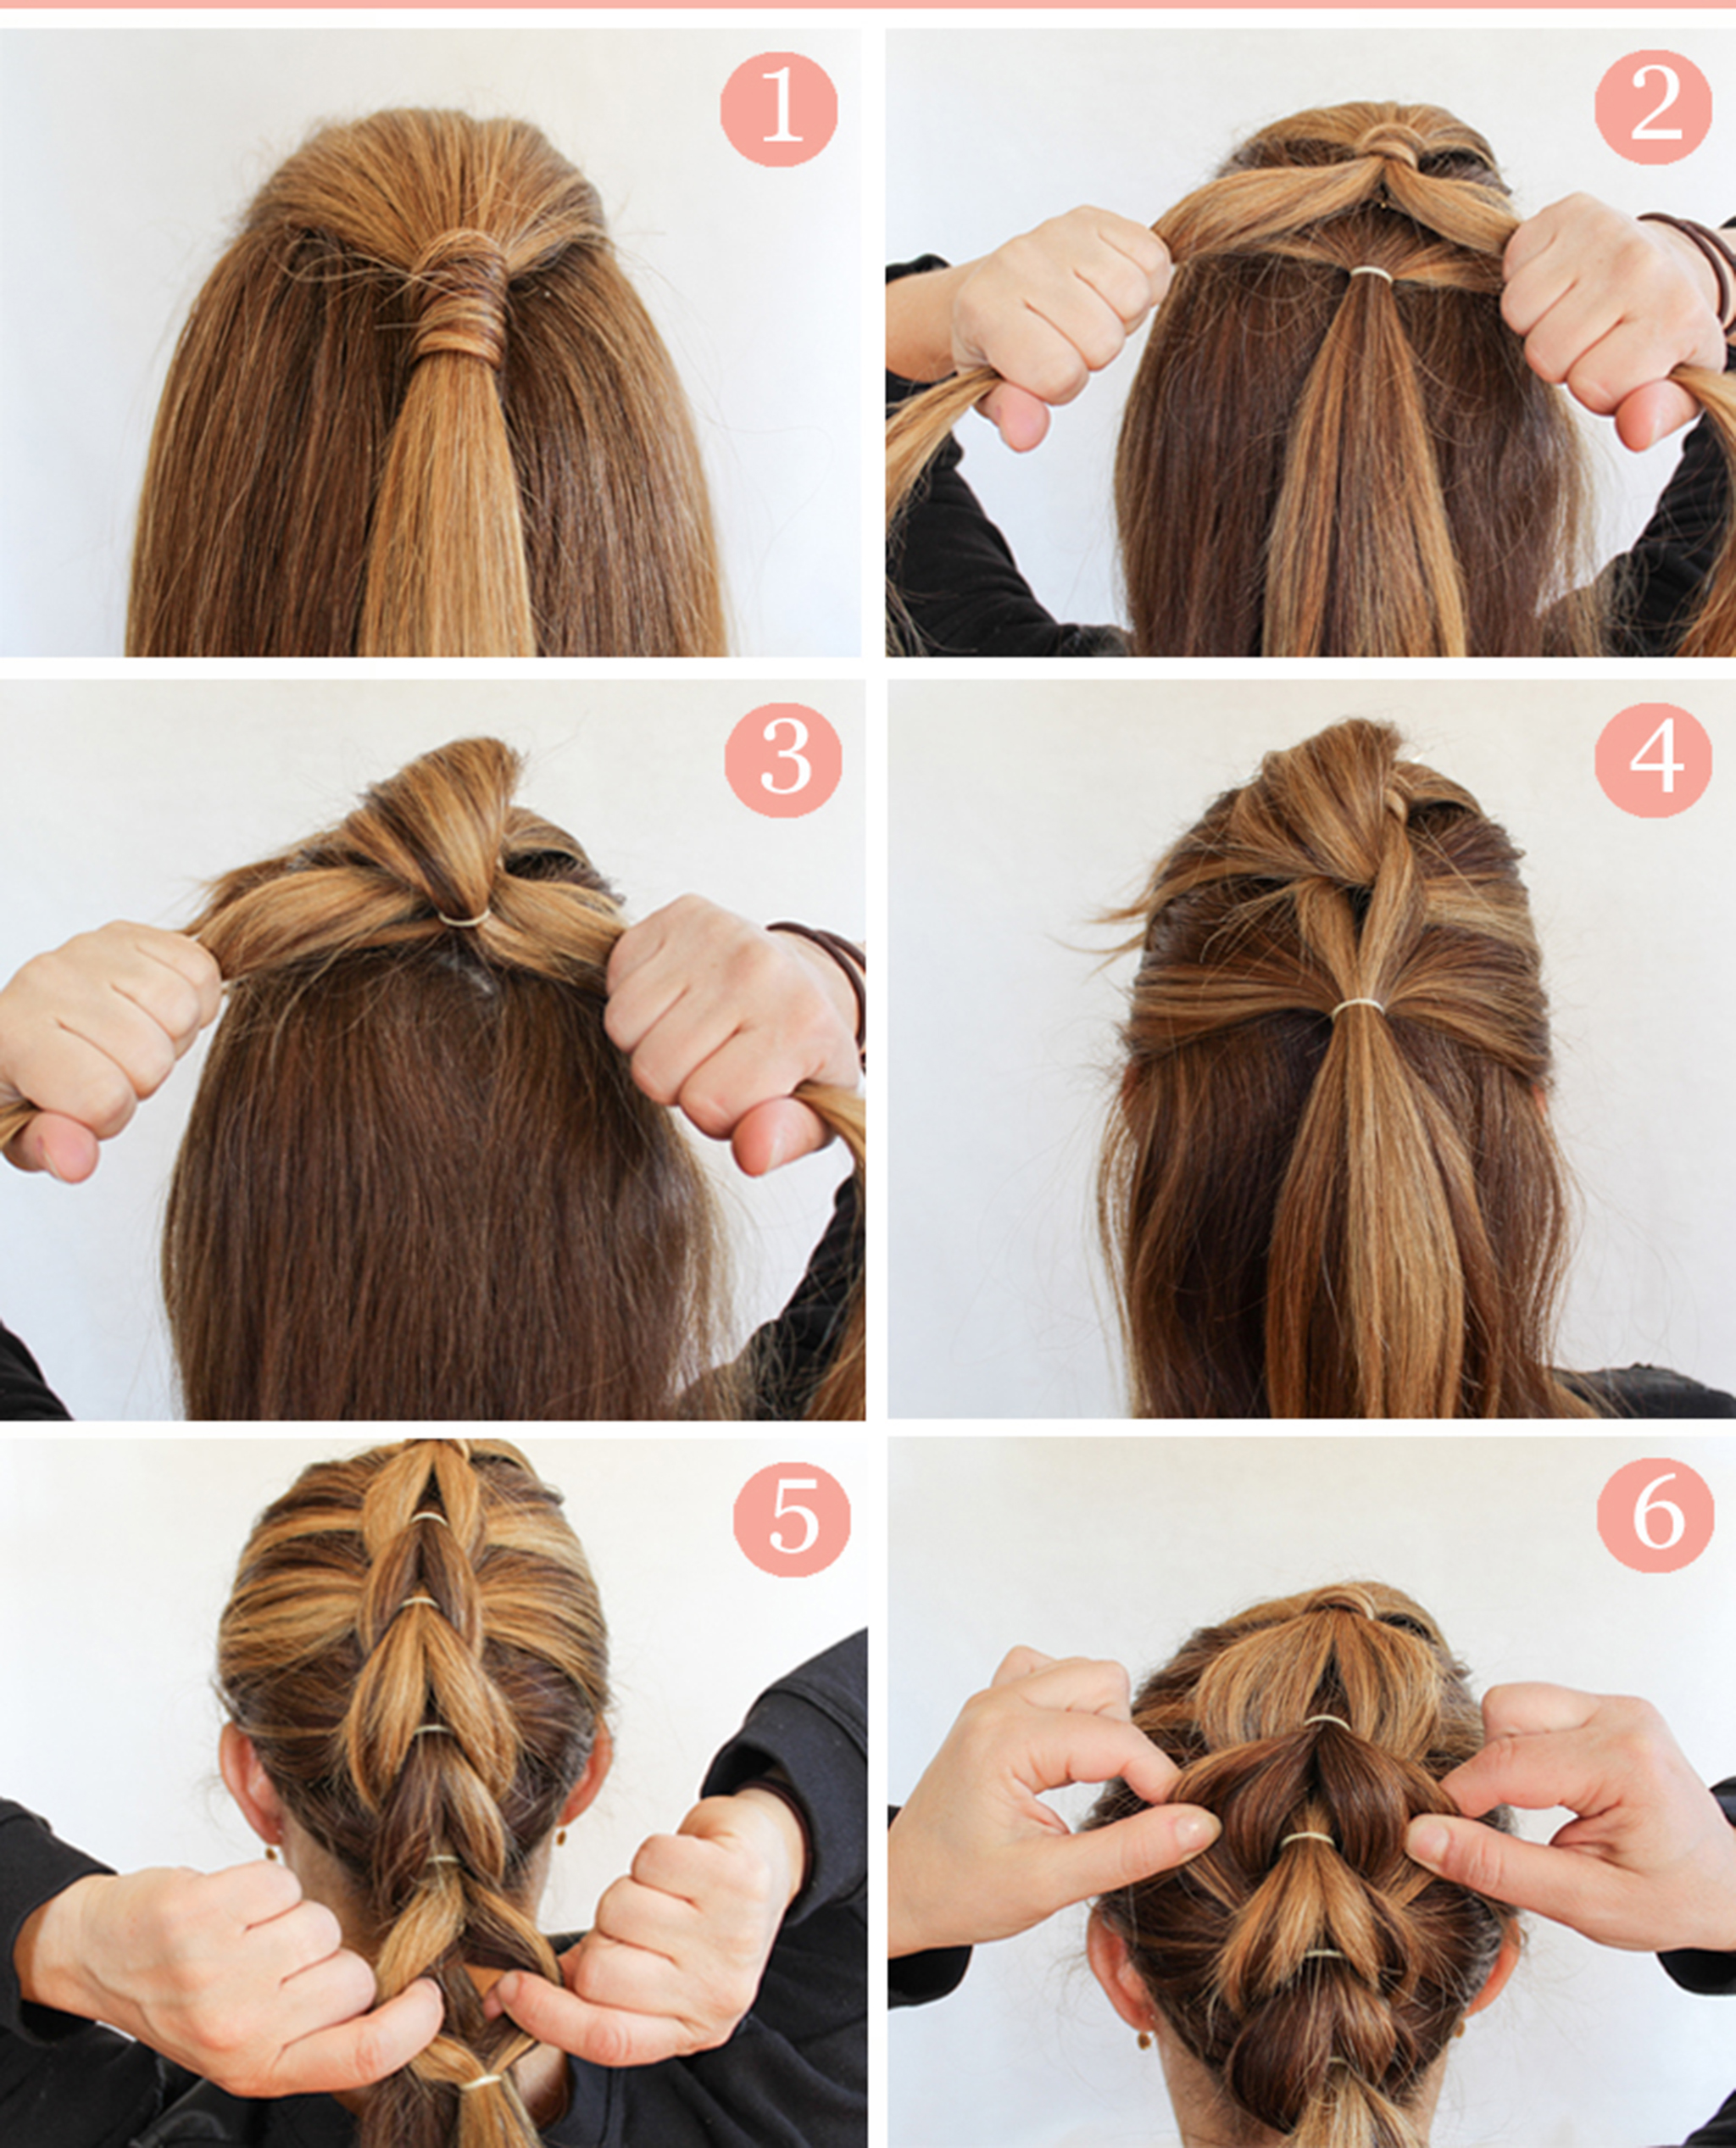 learn how to make fluffy braid hairstyle step by step